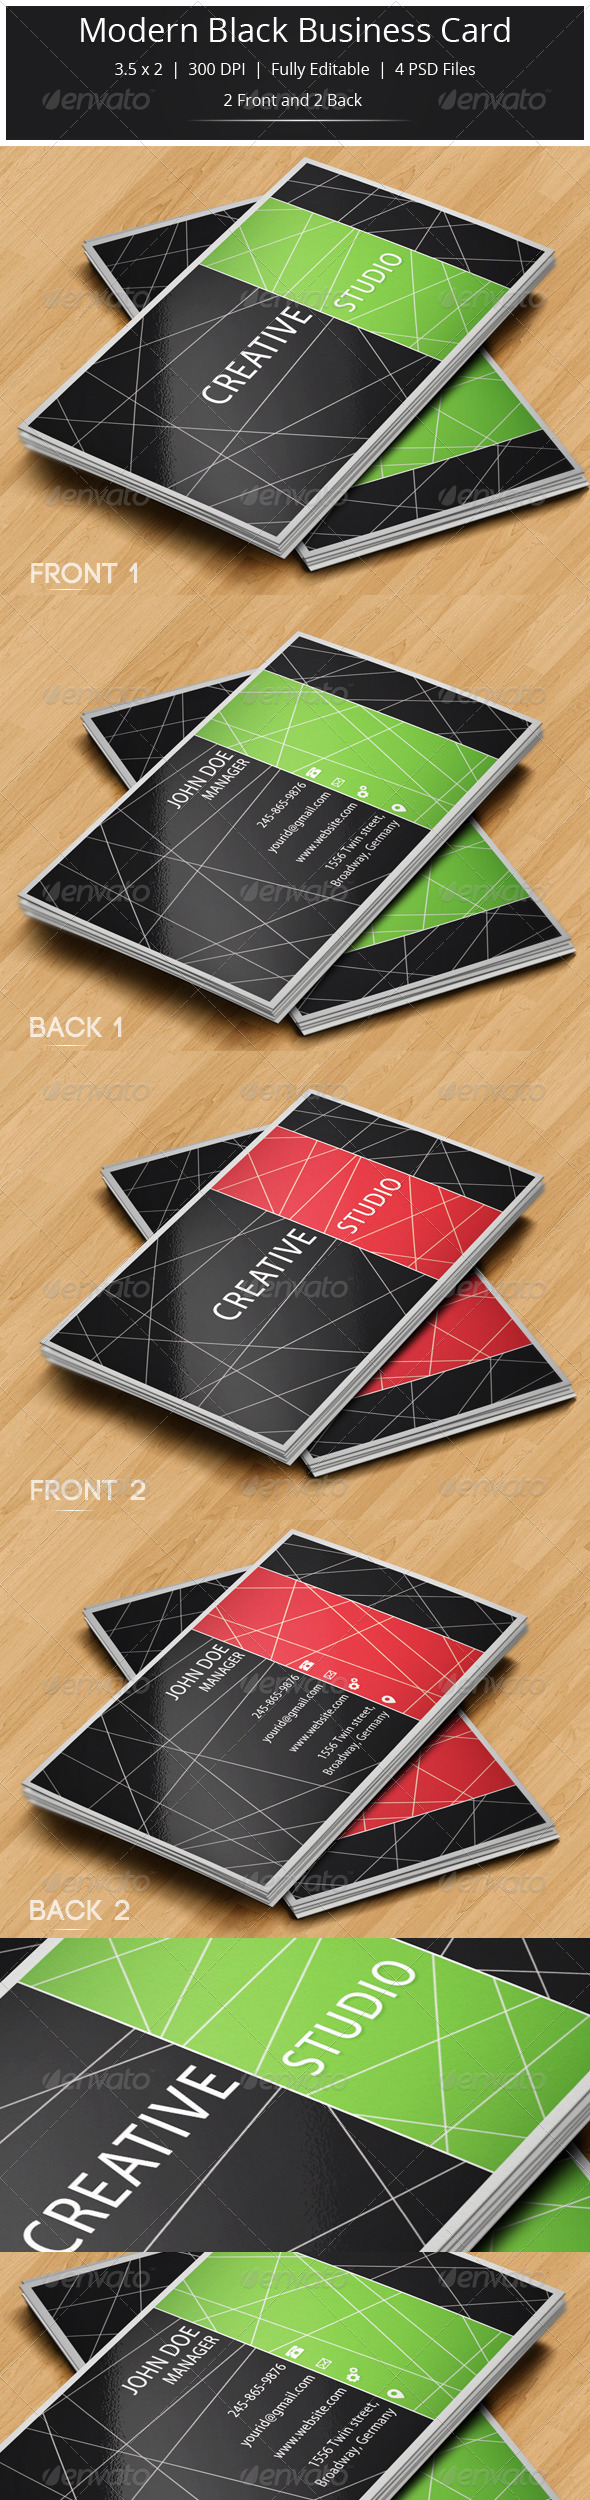 GraphicRiver Modern Black Business Card 5776113